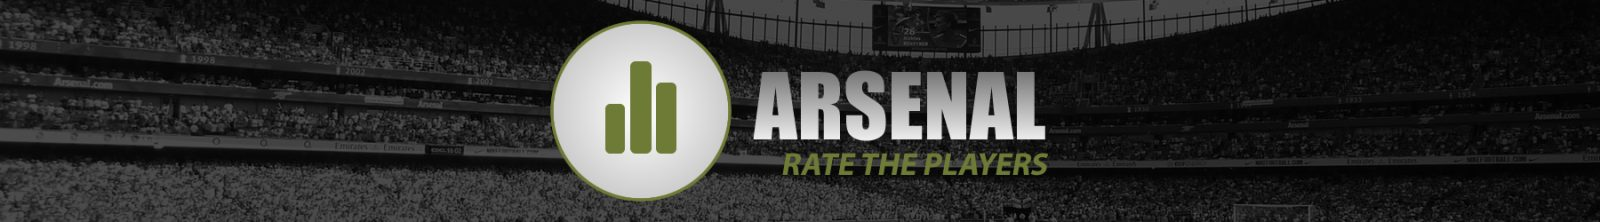 Rate Arsenal